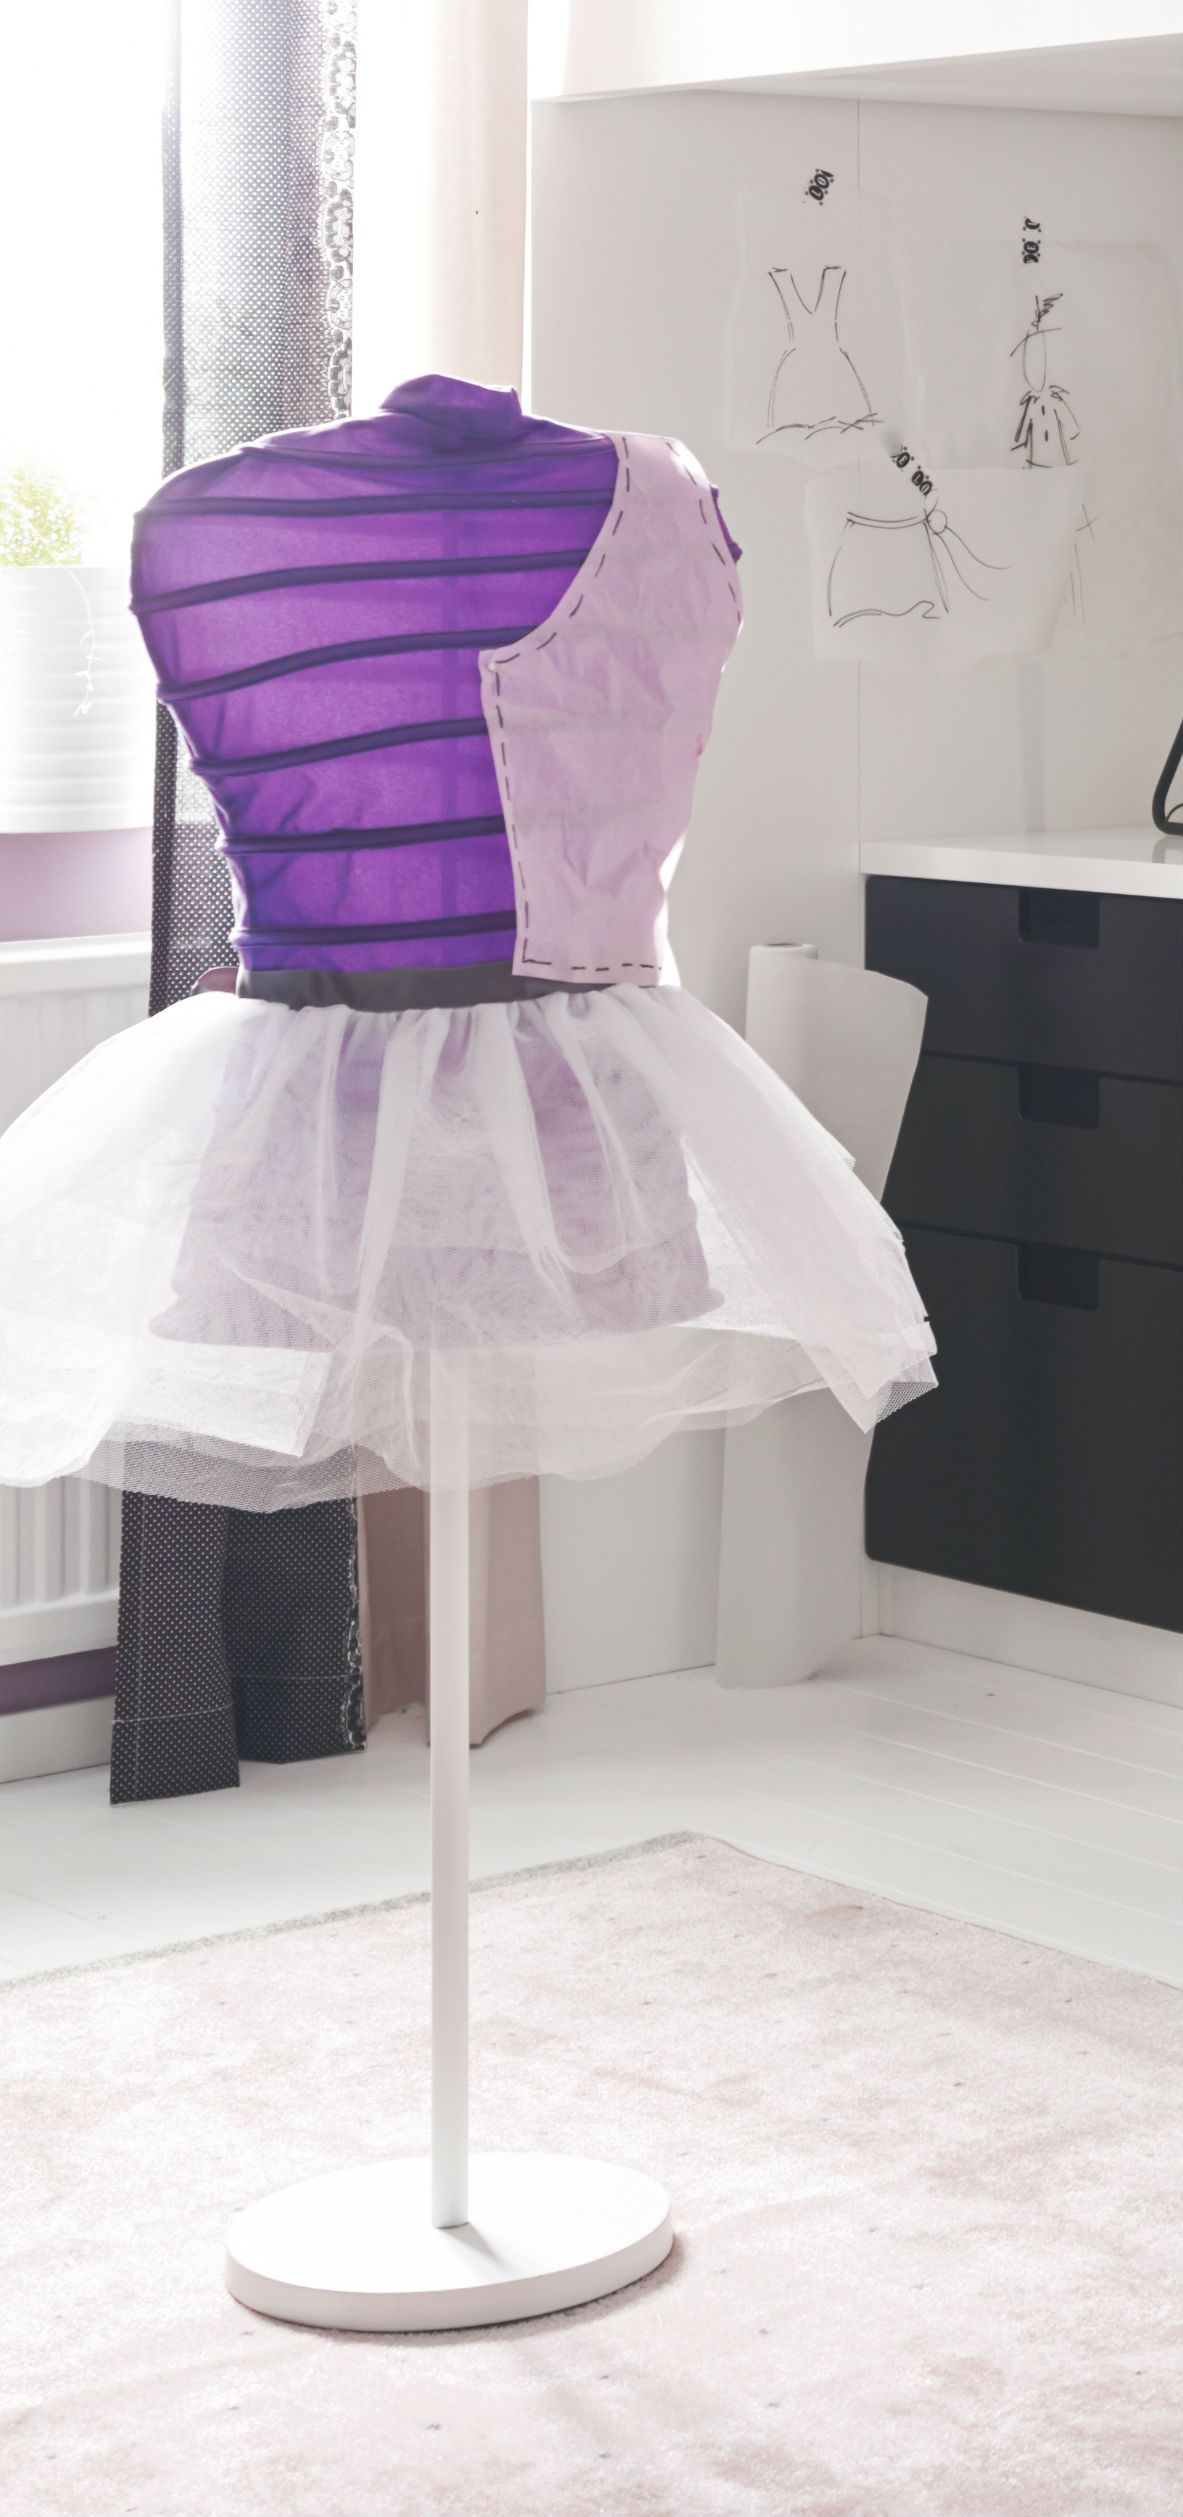 Us Furniture And Home Furnishings Clothes Stand Girl